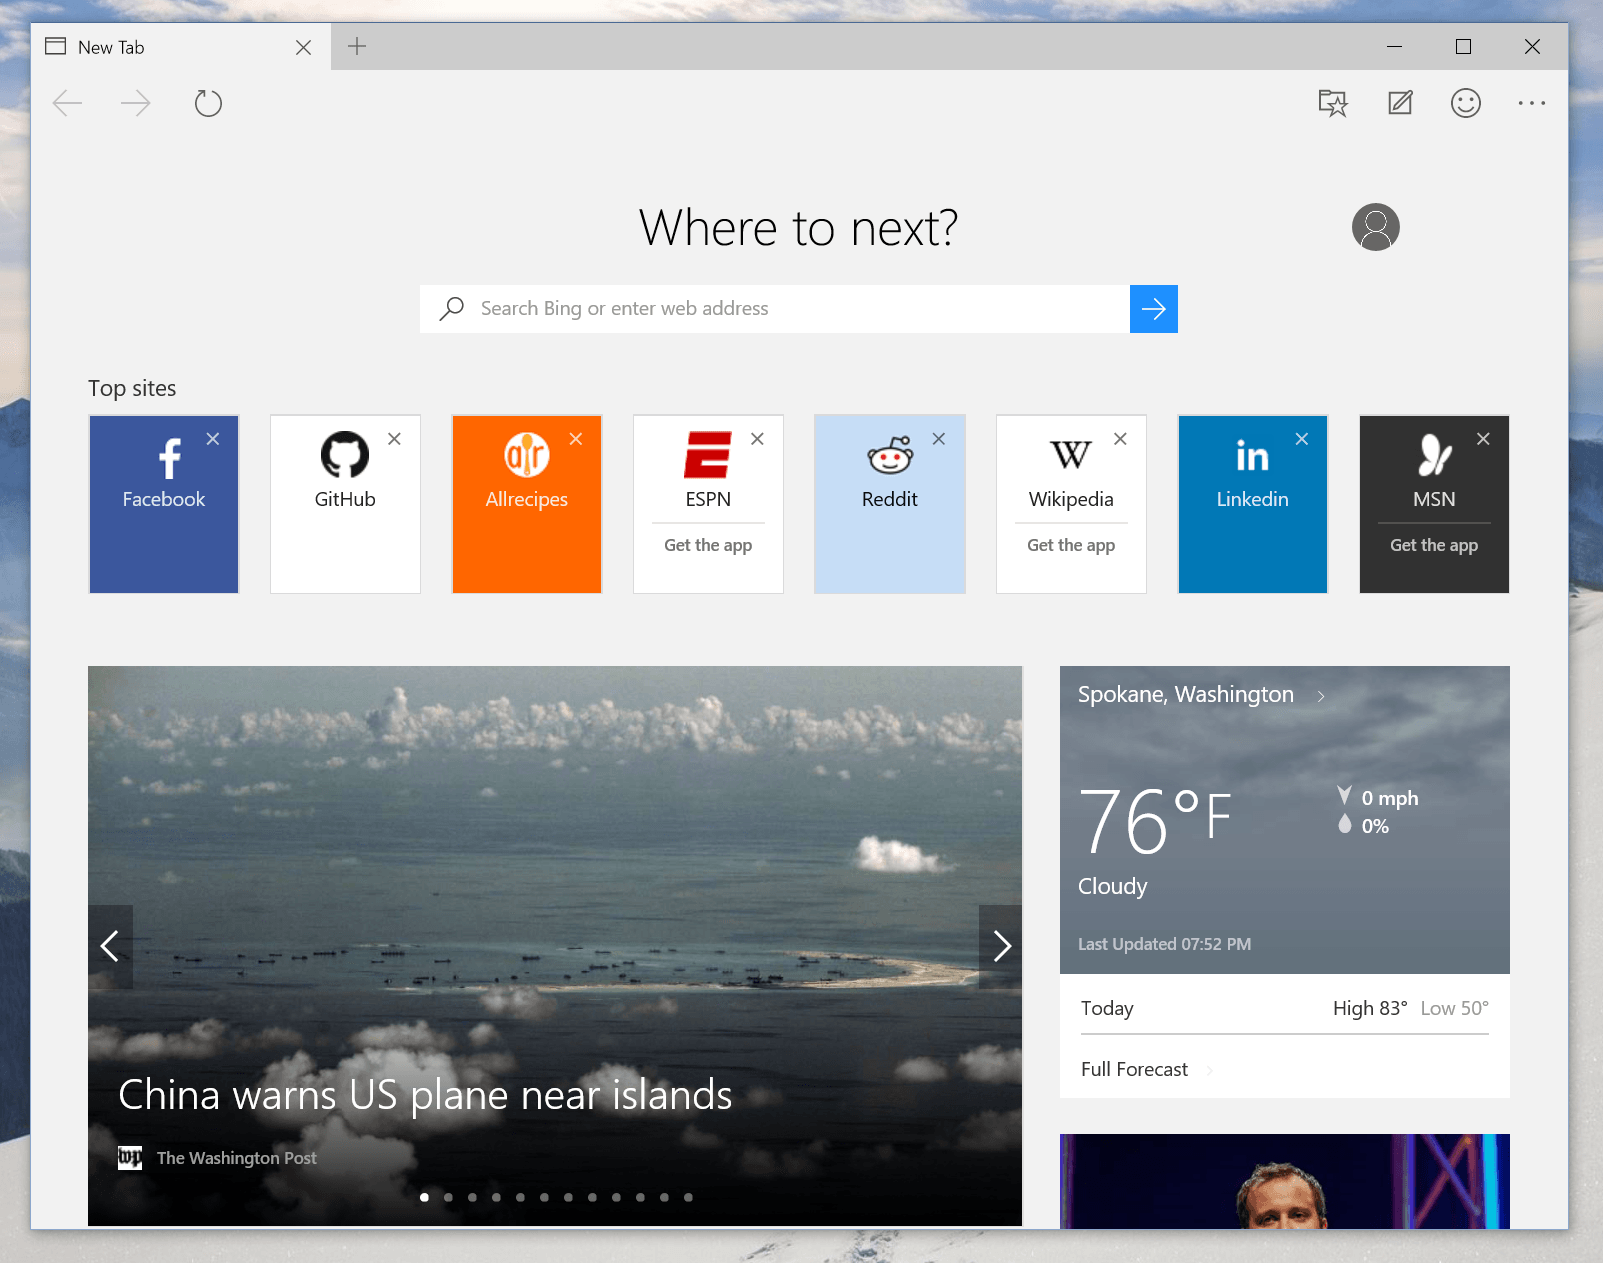 Daily new pics not showing up as background on MS edge welcome tab home screen. edge_newtab_10122_1.png